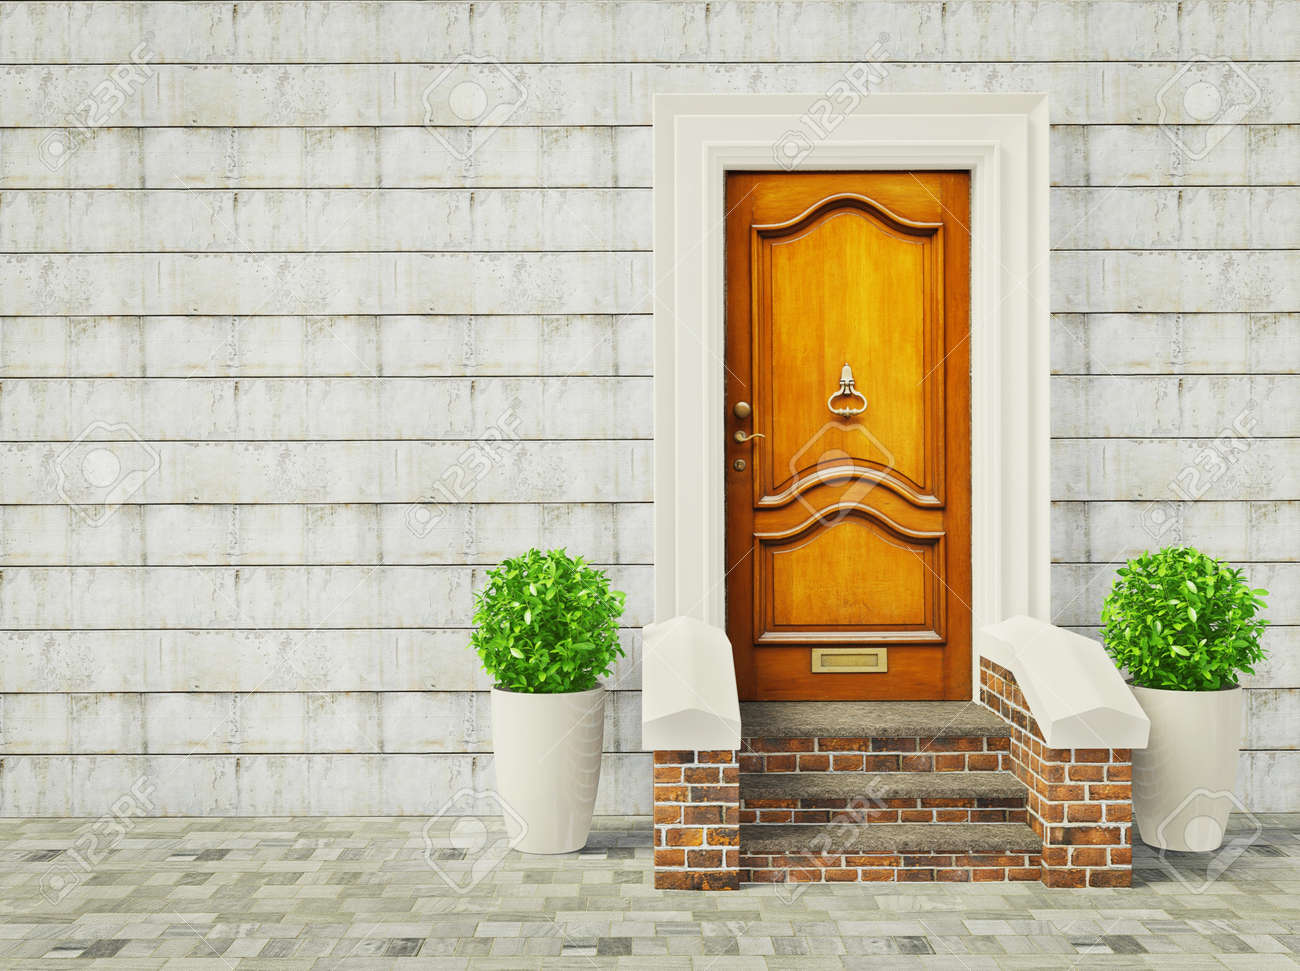 vintage door and two plants near wall. Stock Photo - 11712329 & Vintage Door And Two Plants Near Wall. Stock Photo Picture And ... Pezcame.Com